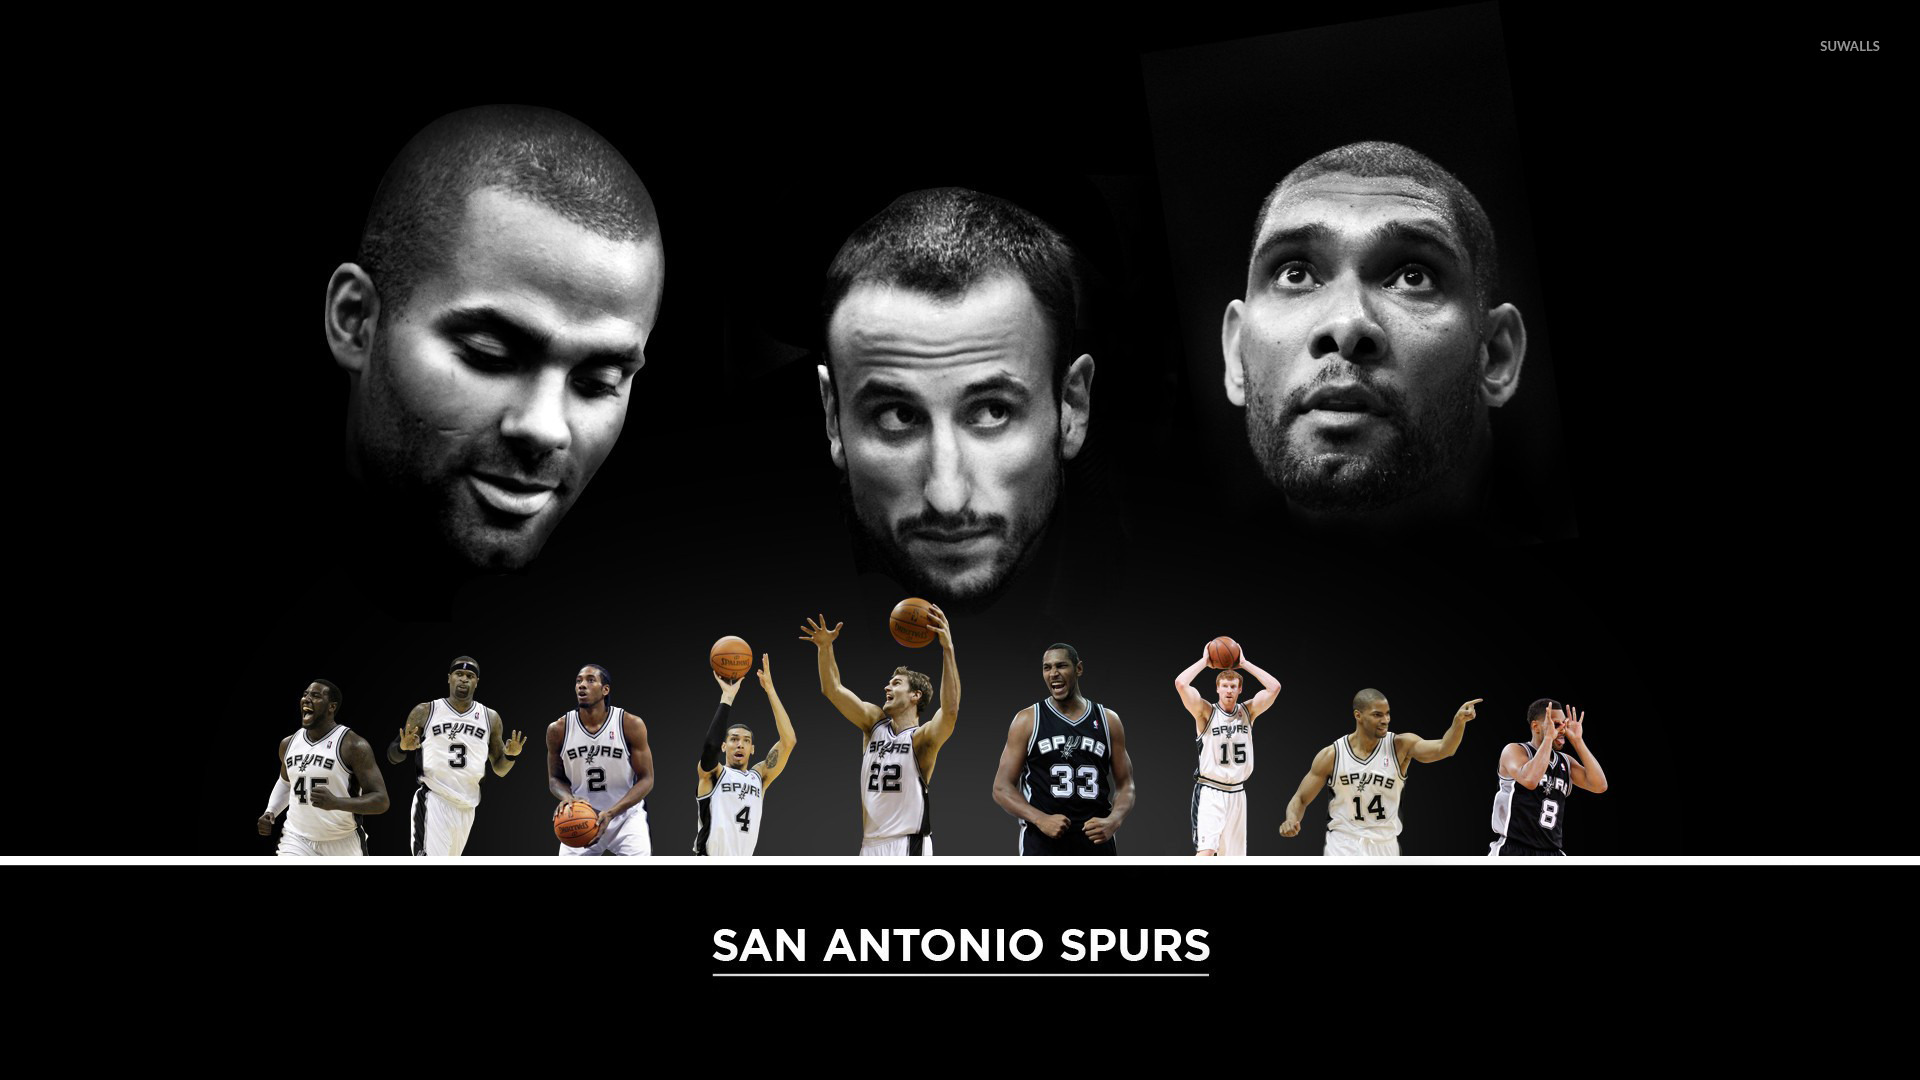 San Antonio Spurs Wallpaper Sport Wallpapers 23214